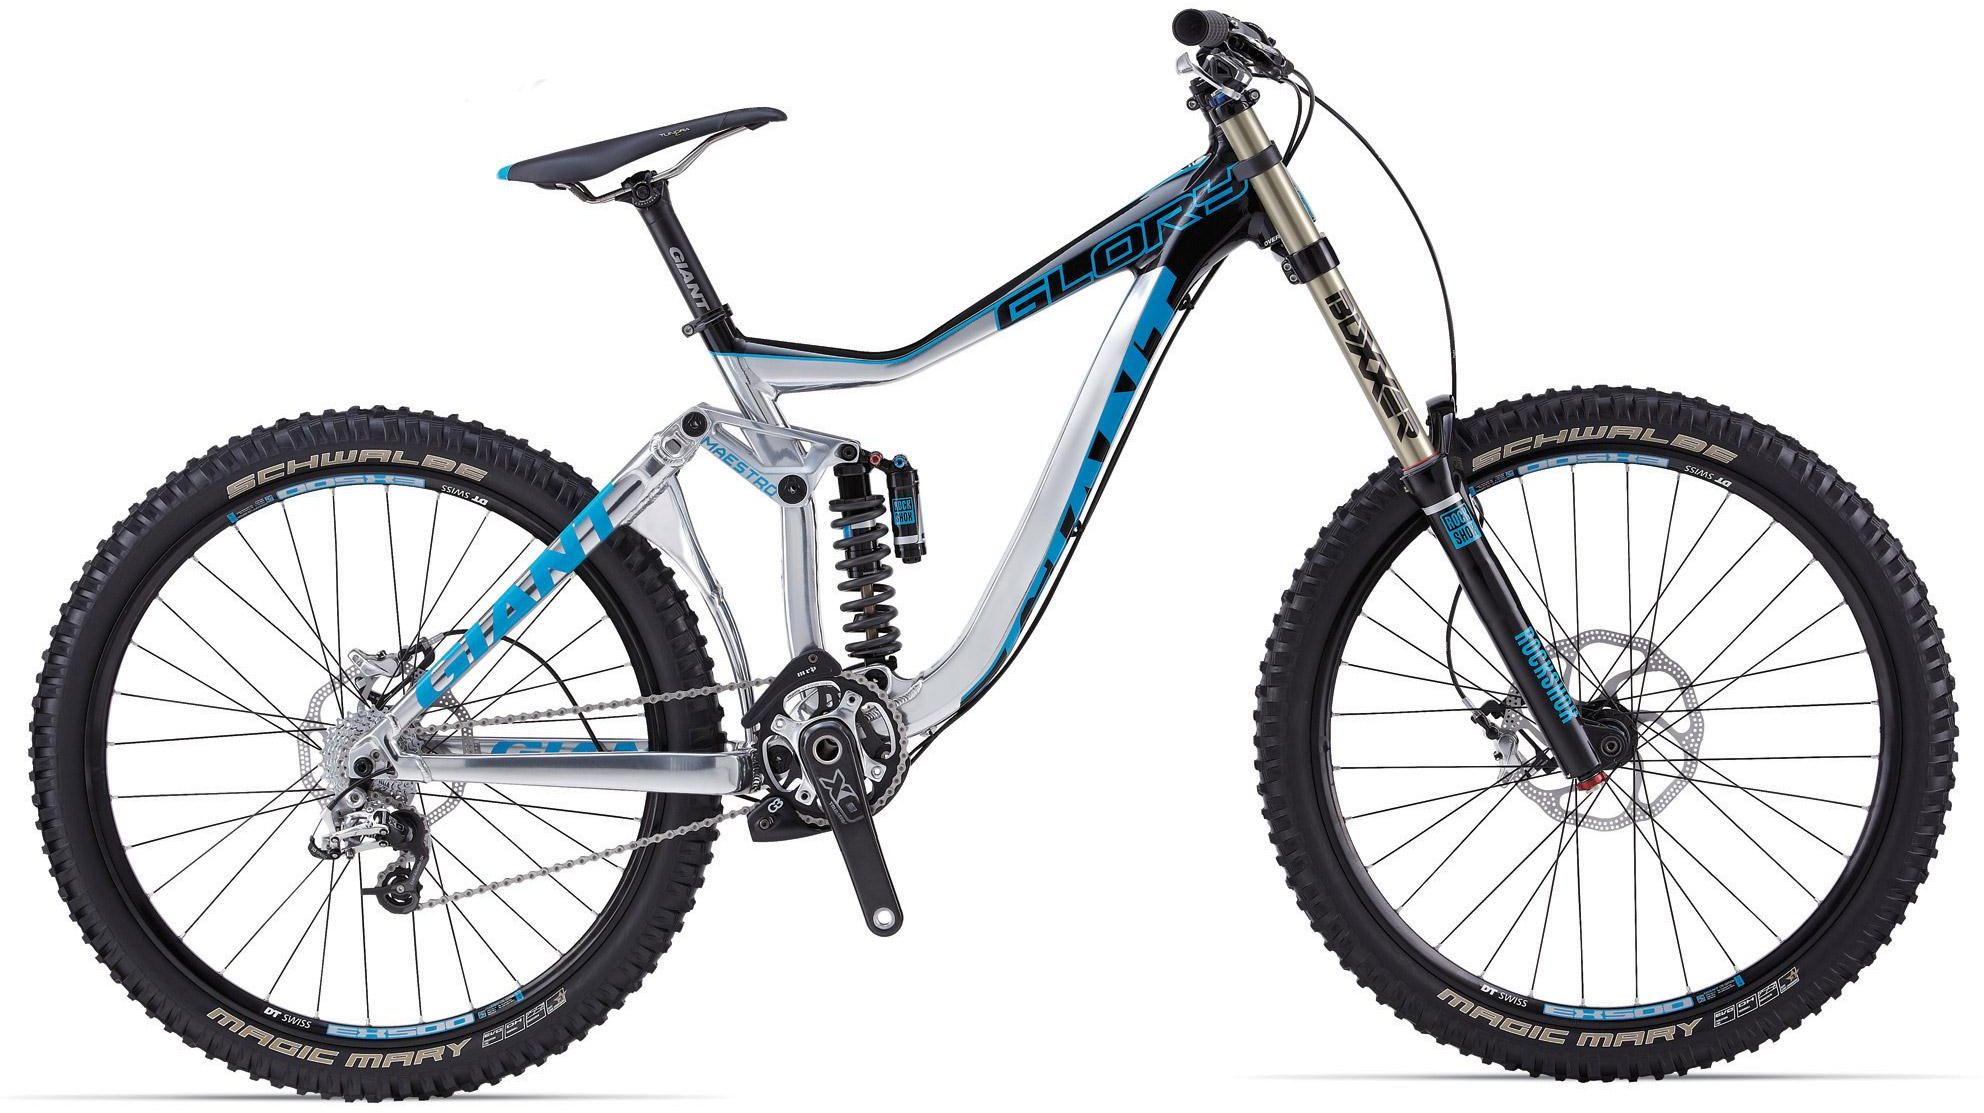 Giant Glory 0 2014 review - The Bike List